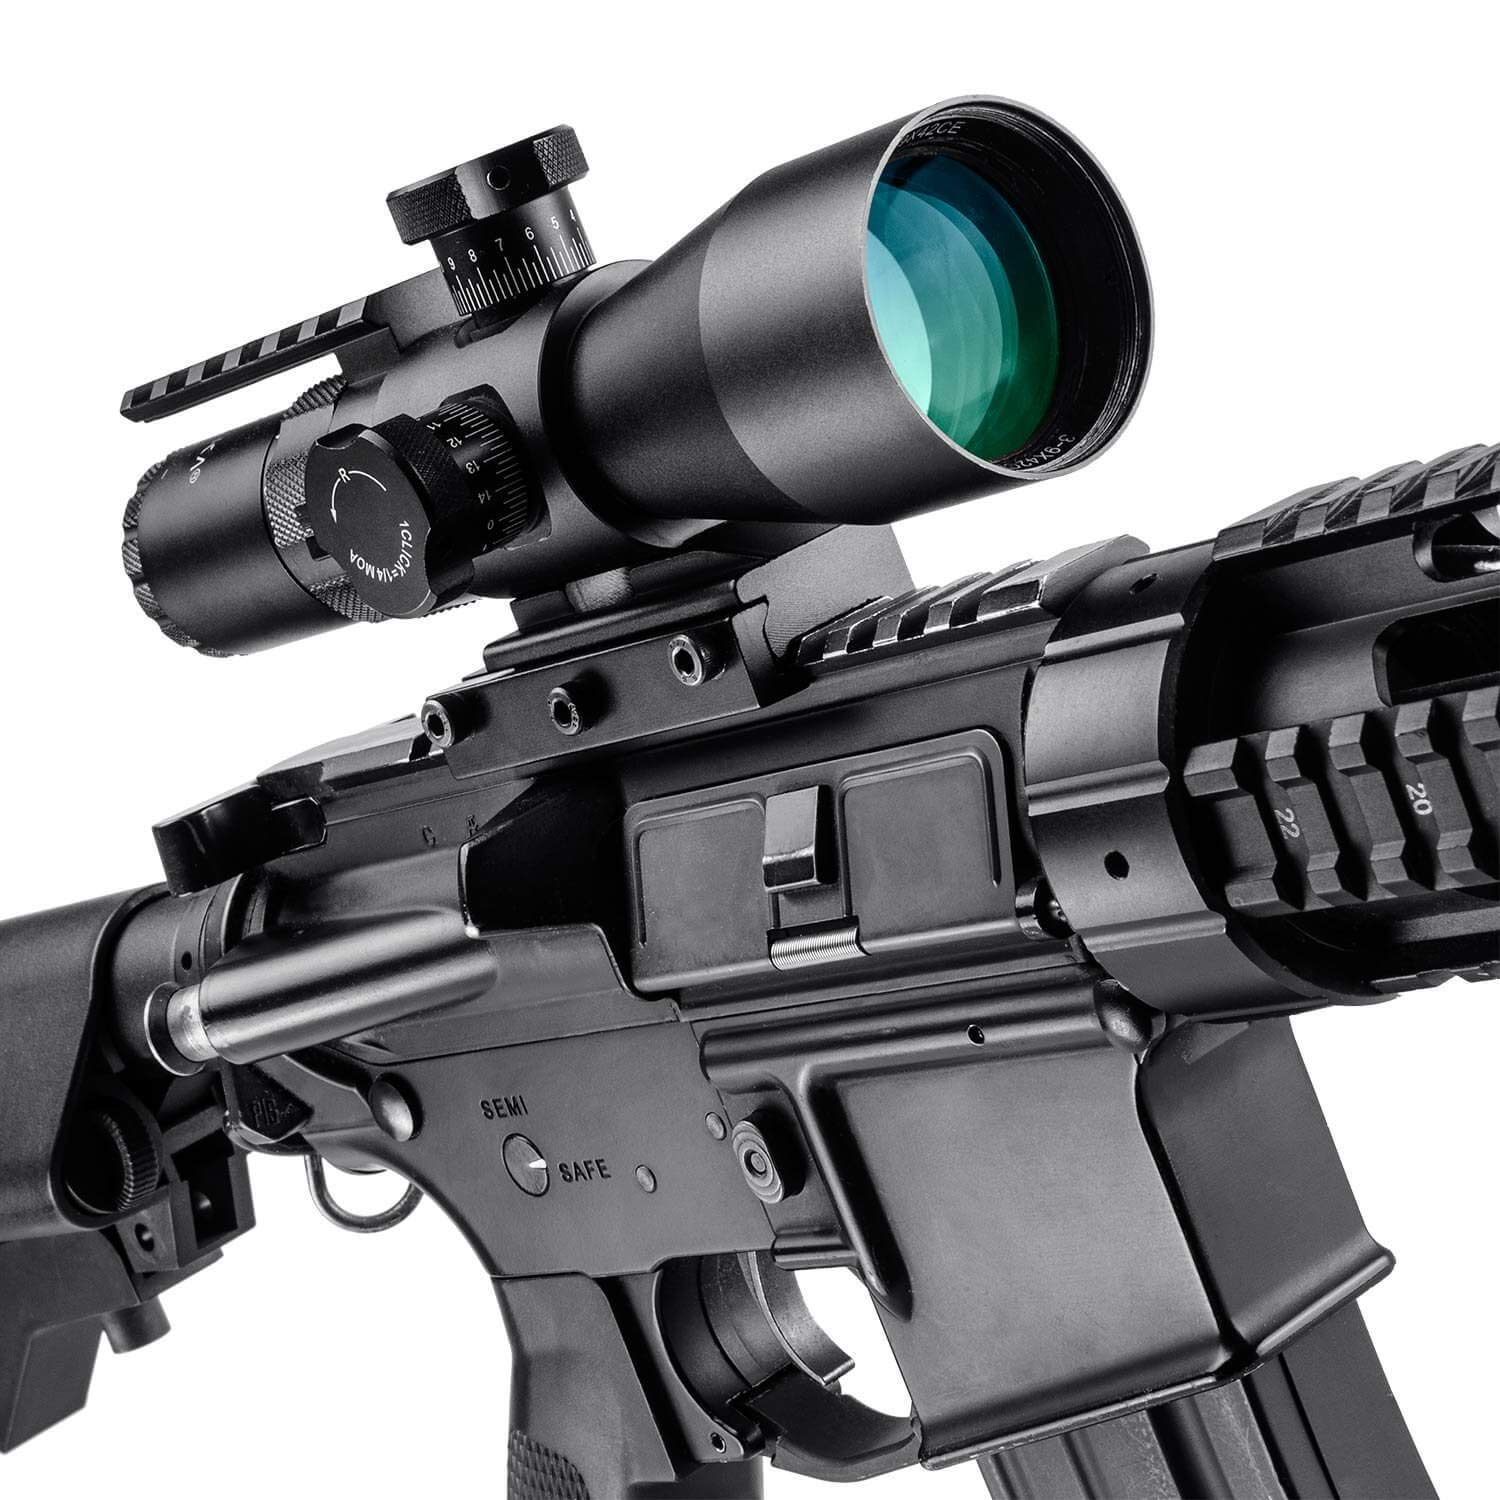 BARSKA New Rifle Scopes 3-9x42mm Red/Green Mil-Dot Reticle with Accessory Rail Mount by BARSKA